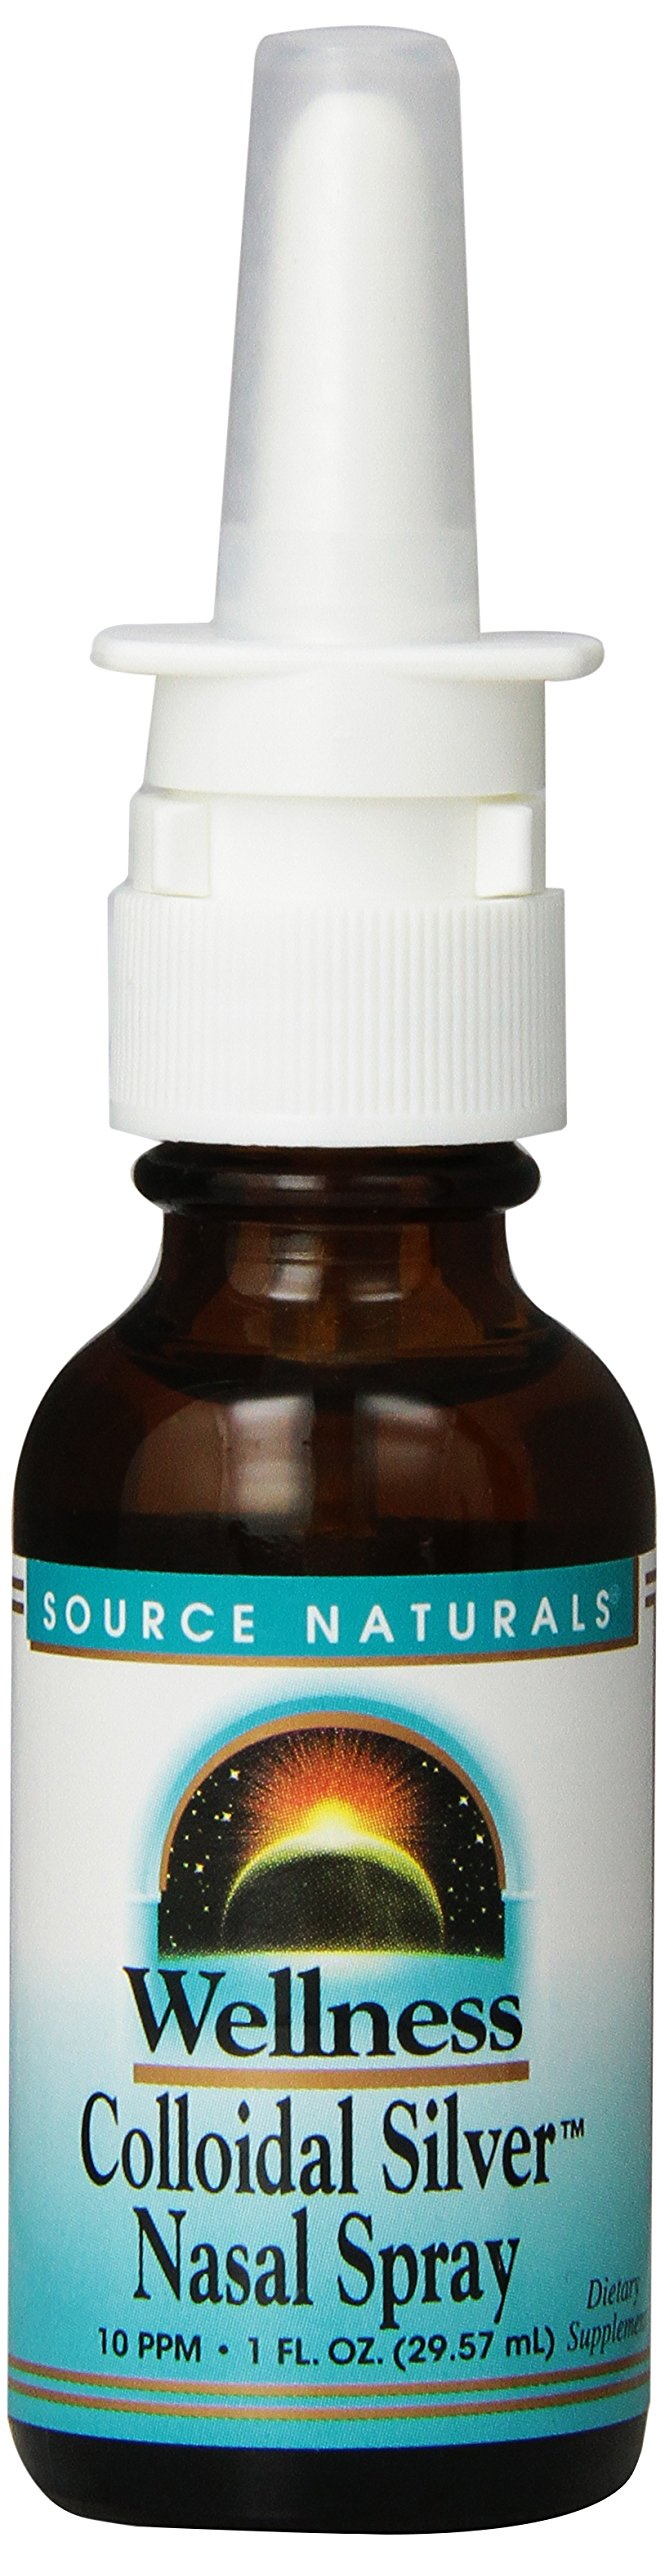 Source Naturals Wellness Colloidal Silver Nasal Spray, 1 Fl Oz